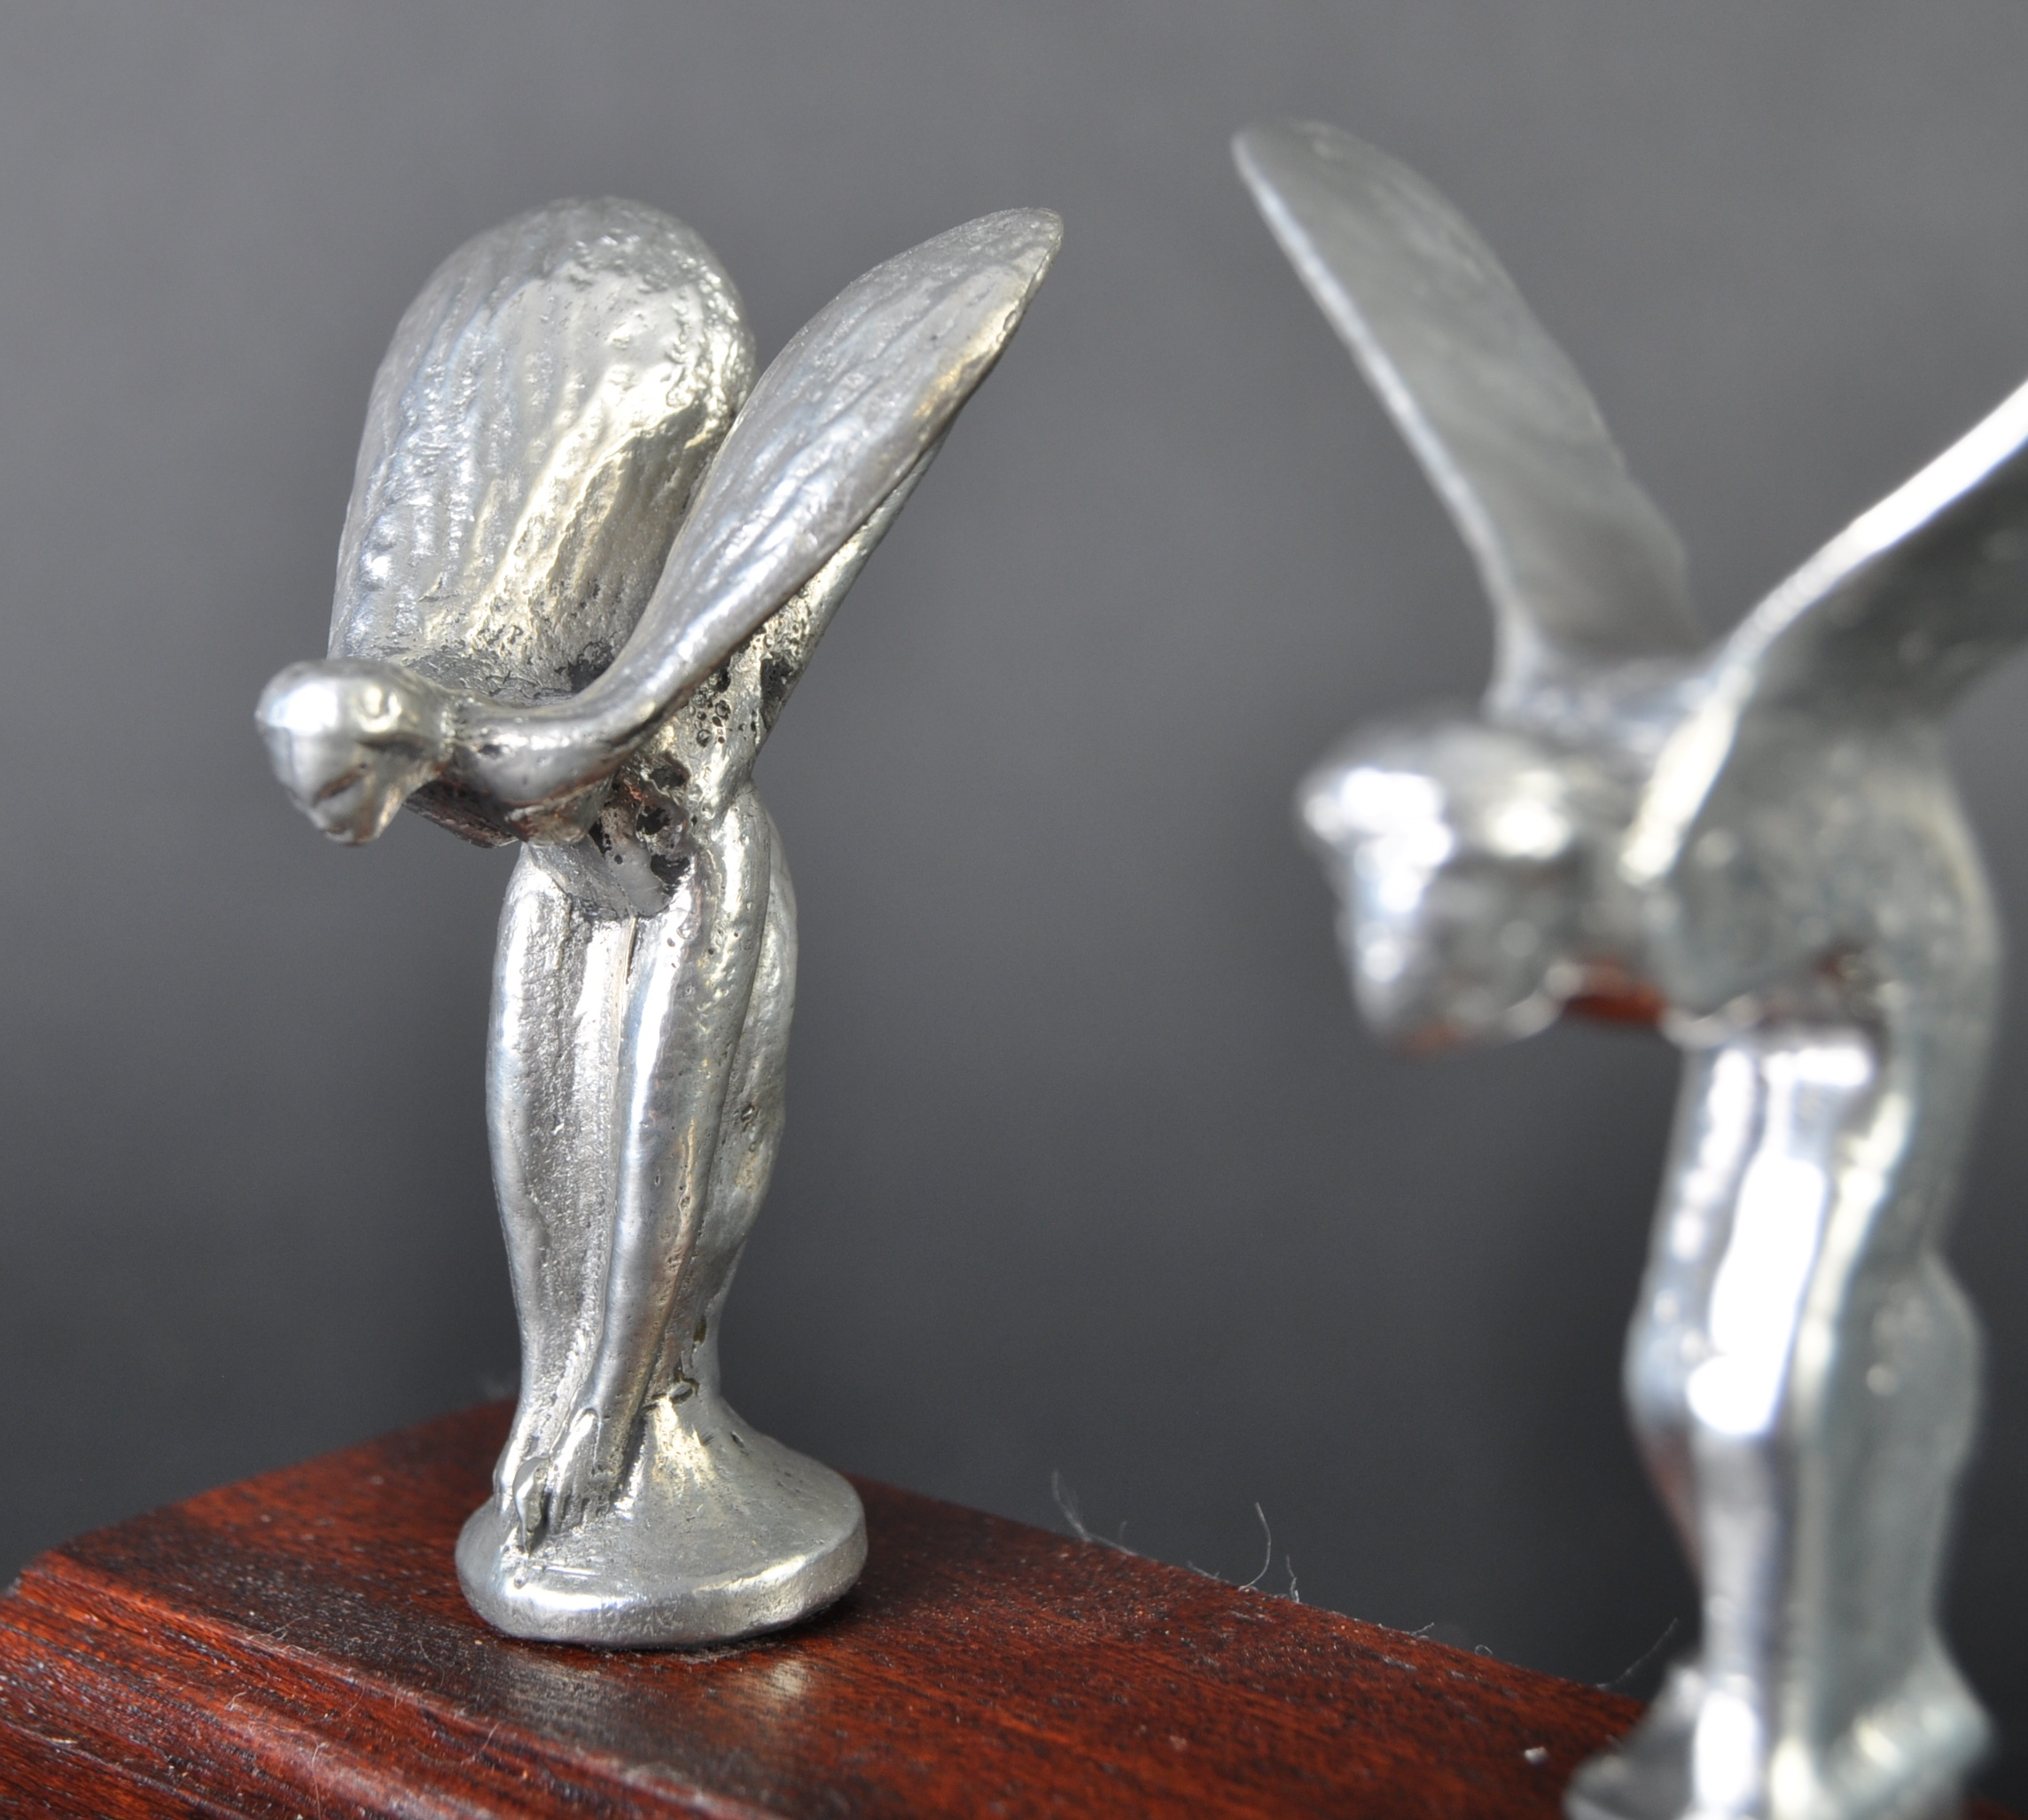 ROLLS ROYCE - SPIRIT OF ECSTASY - PEDAL CAR MASCOTS - Image 3 of 4